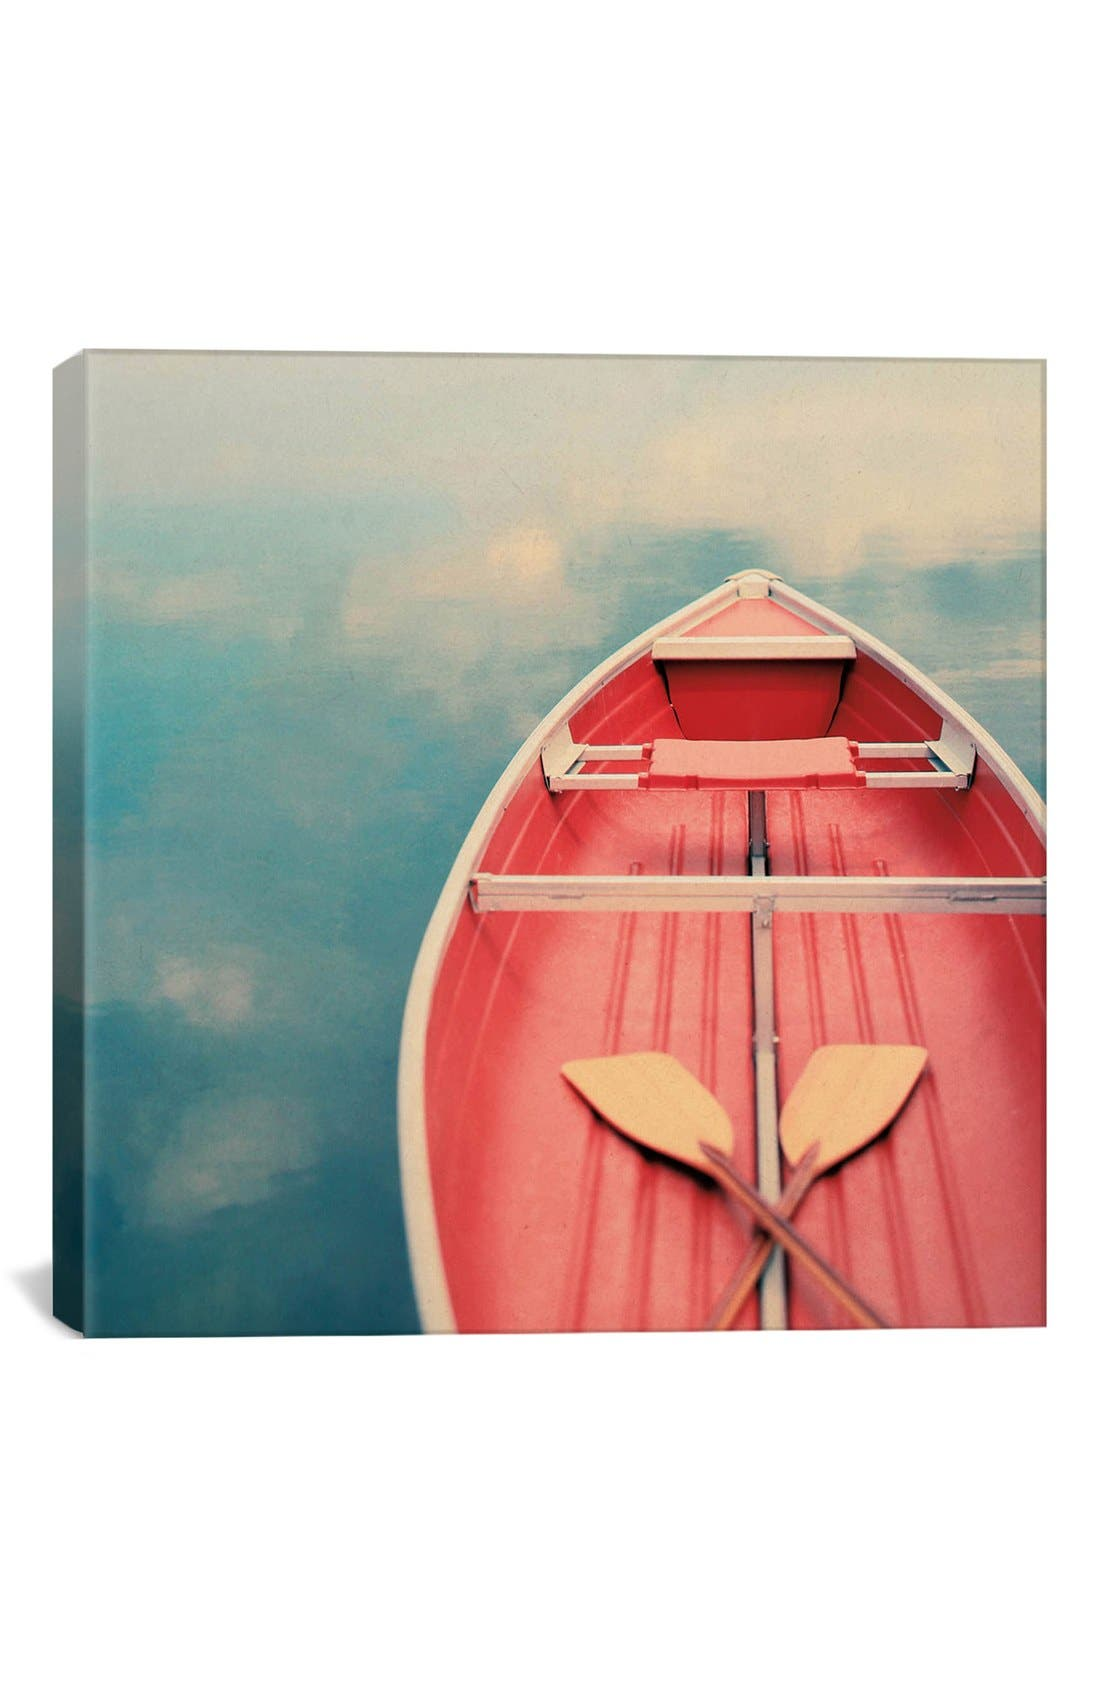 Alternate Image 1 Selected - iCanvas 'Floating on a Cloud - Alicia Bock' Giclée Print Canvas Art